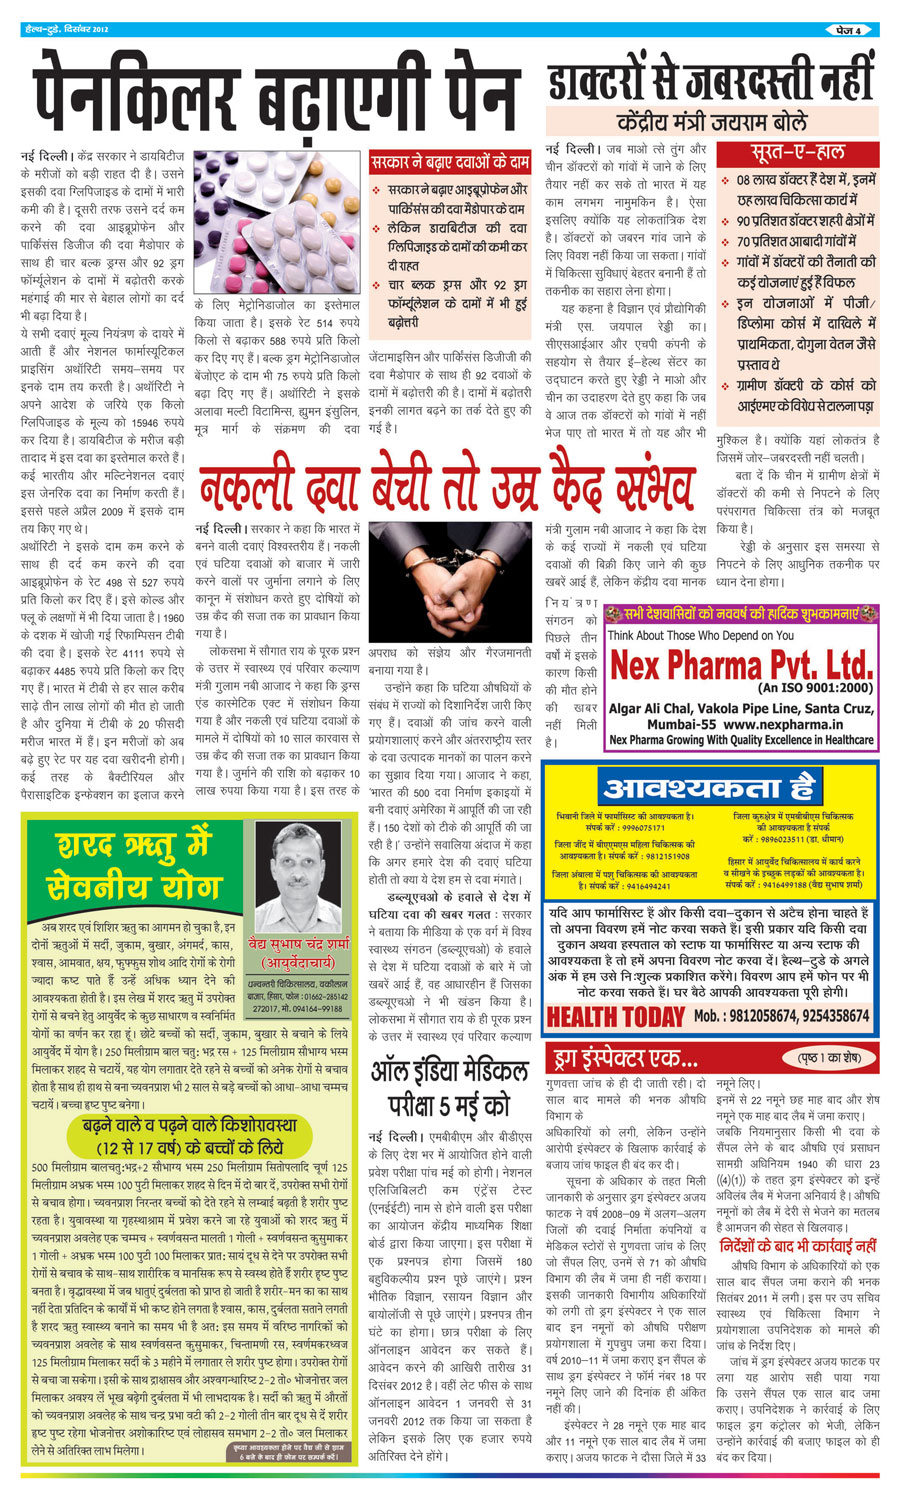 pain killer medicine power ayurvedic medicine for winter session hindi unani medicine doctor health today hindi top medical newspaper india pharma newspaper magazine hindi top picture image online paper hisar hissar news health article dr subhash sharma ayurvedacharya